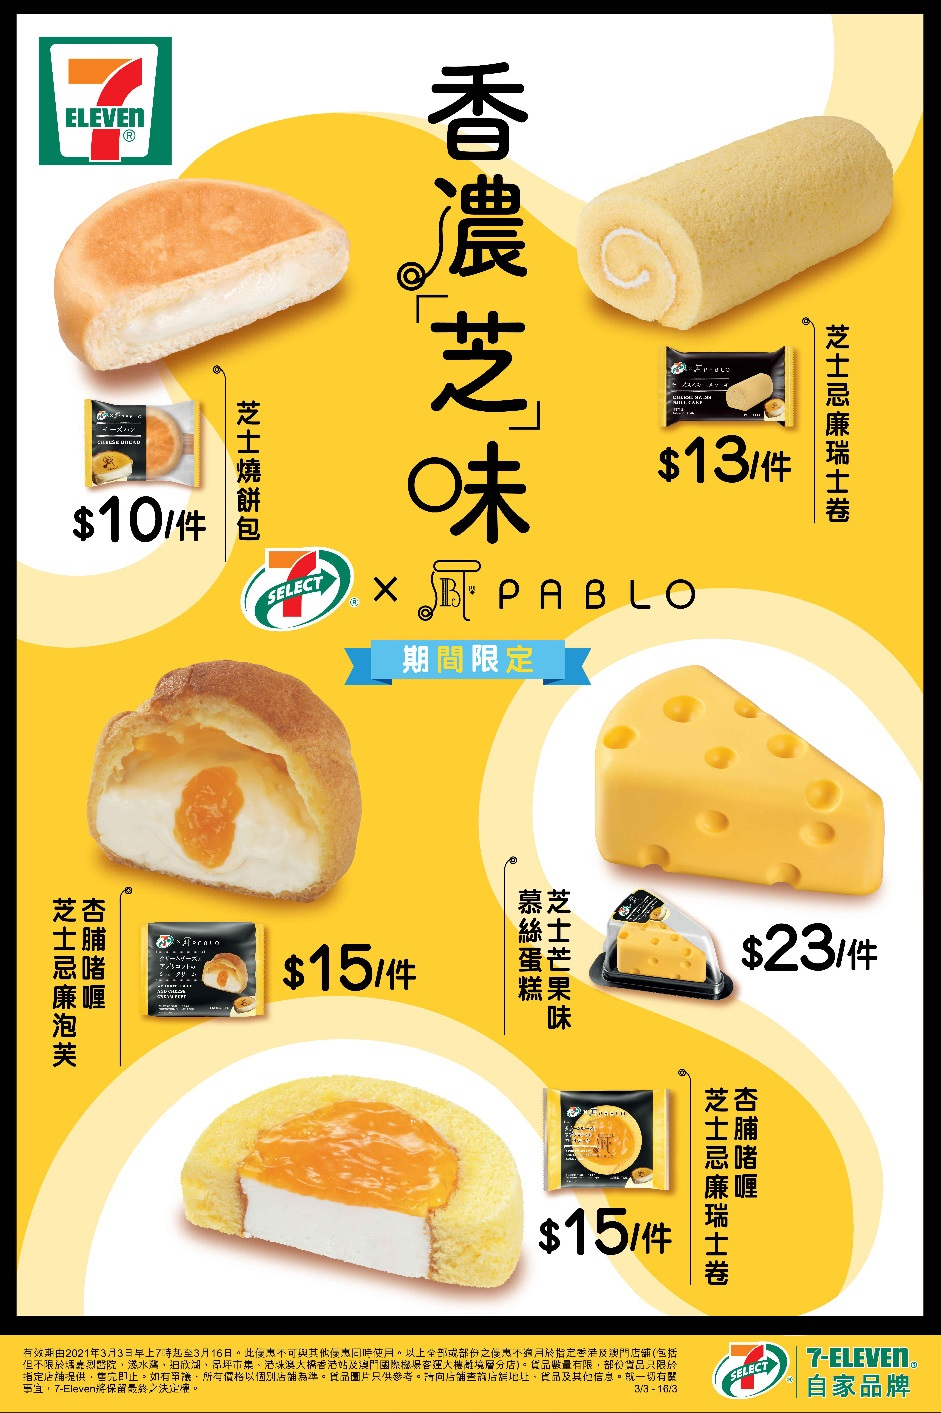 7-SELECT Collaborates with PABLO the Cheese Tart Bakery from Japan To Launch 5 Brand-New Cheese-Inspired Delights